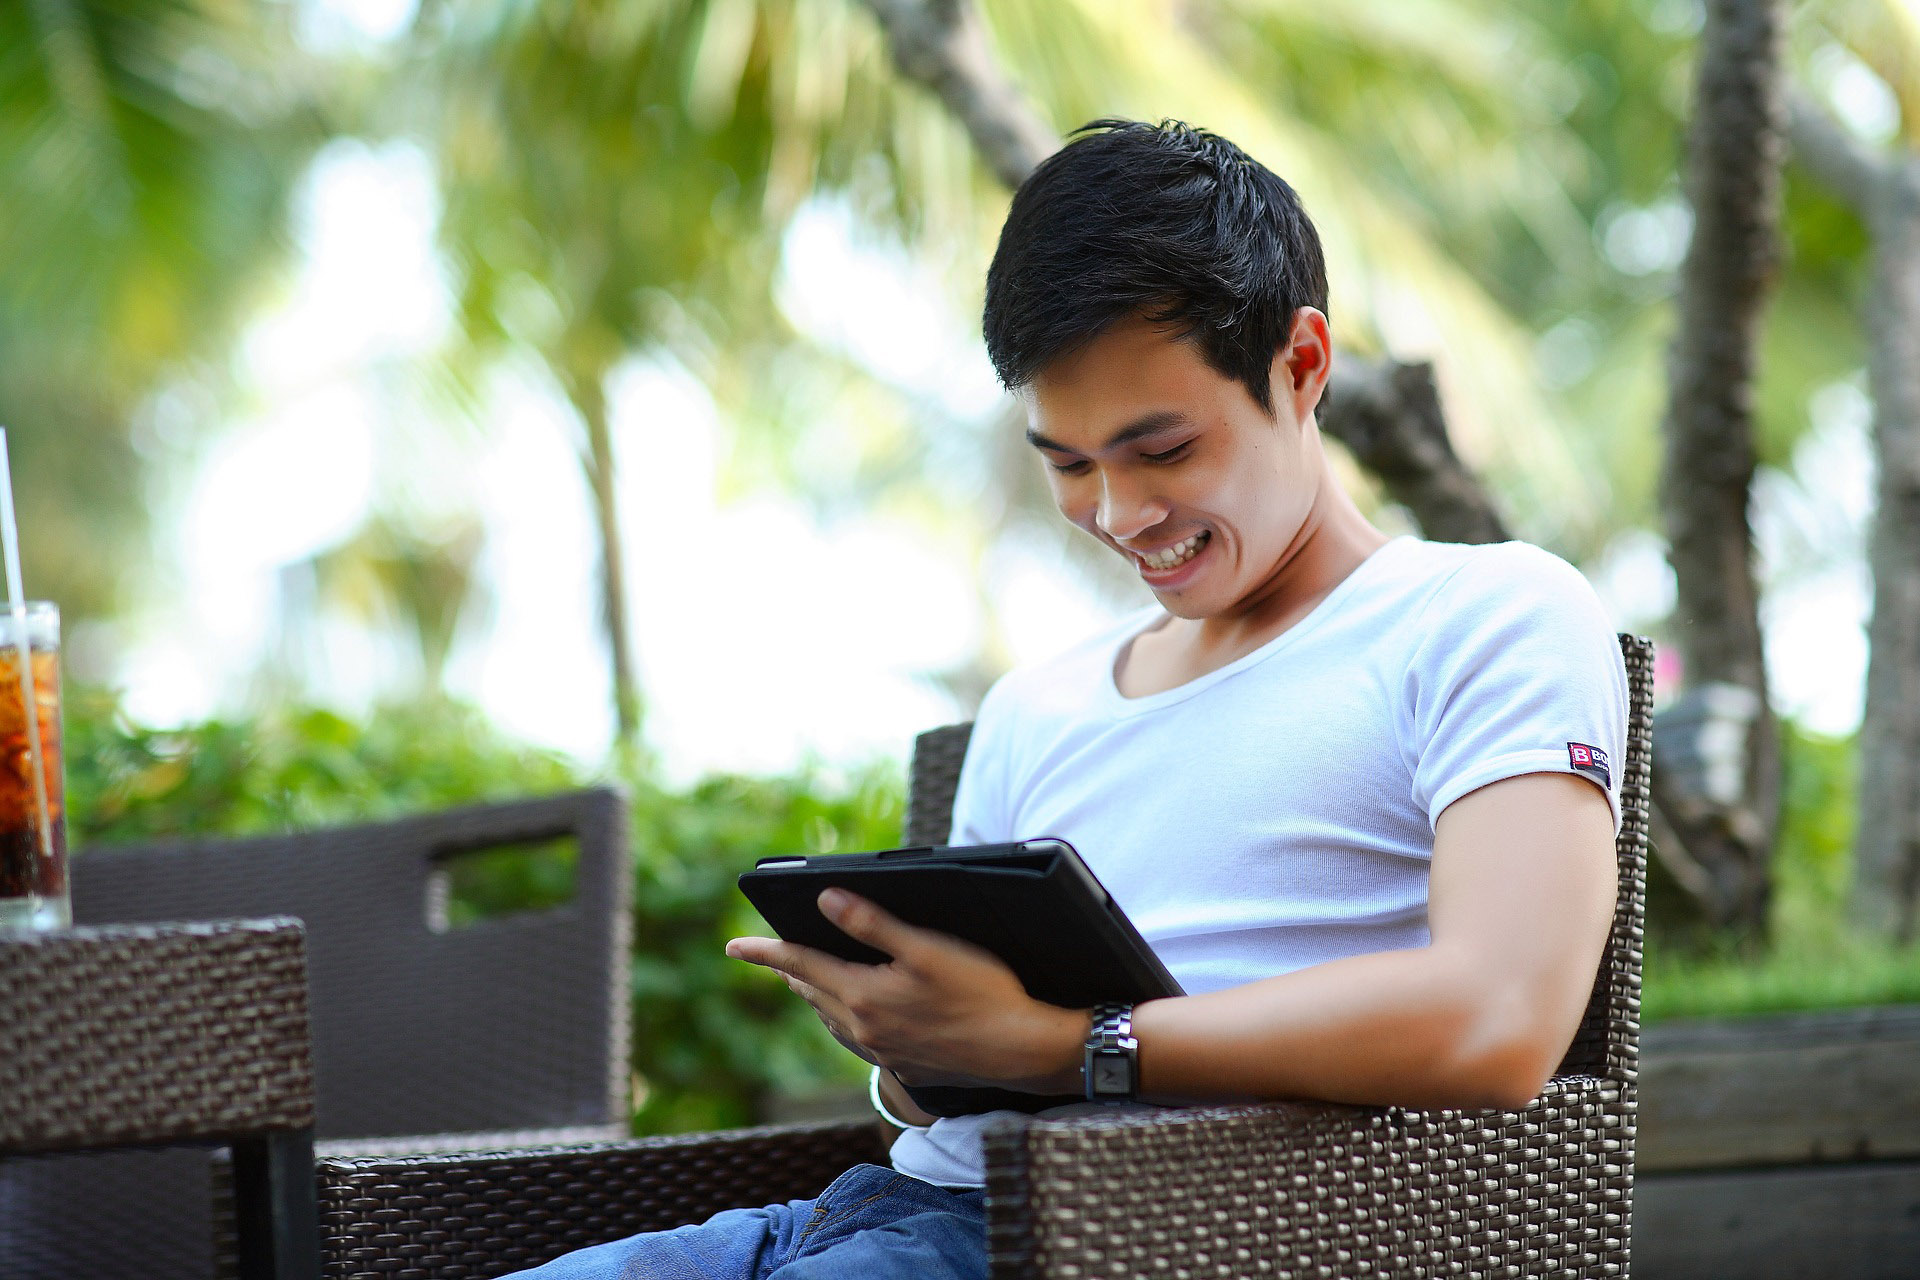 5 Simple Strategies to Prevent or Minimise the Effects of Text Neck